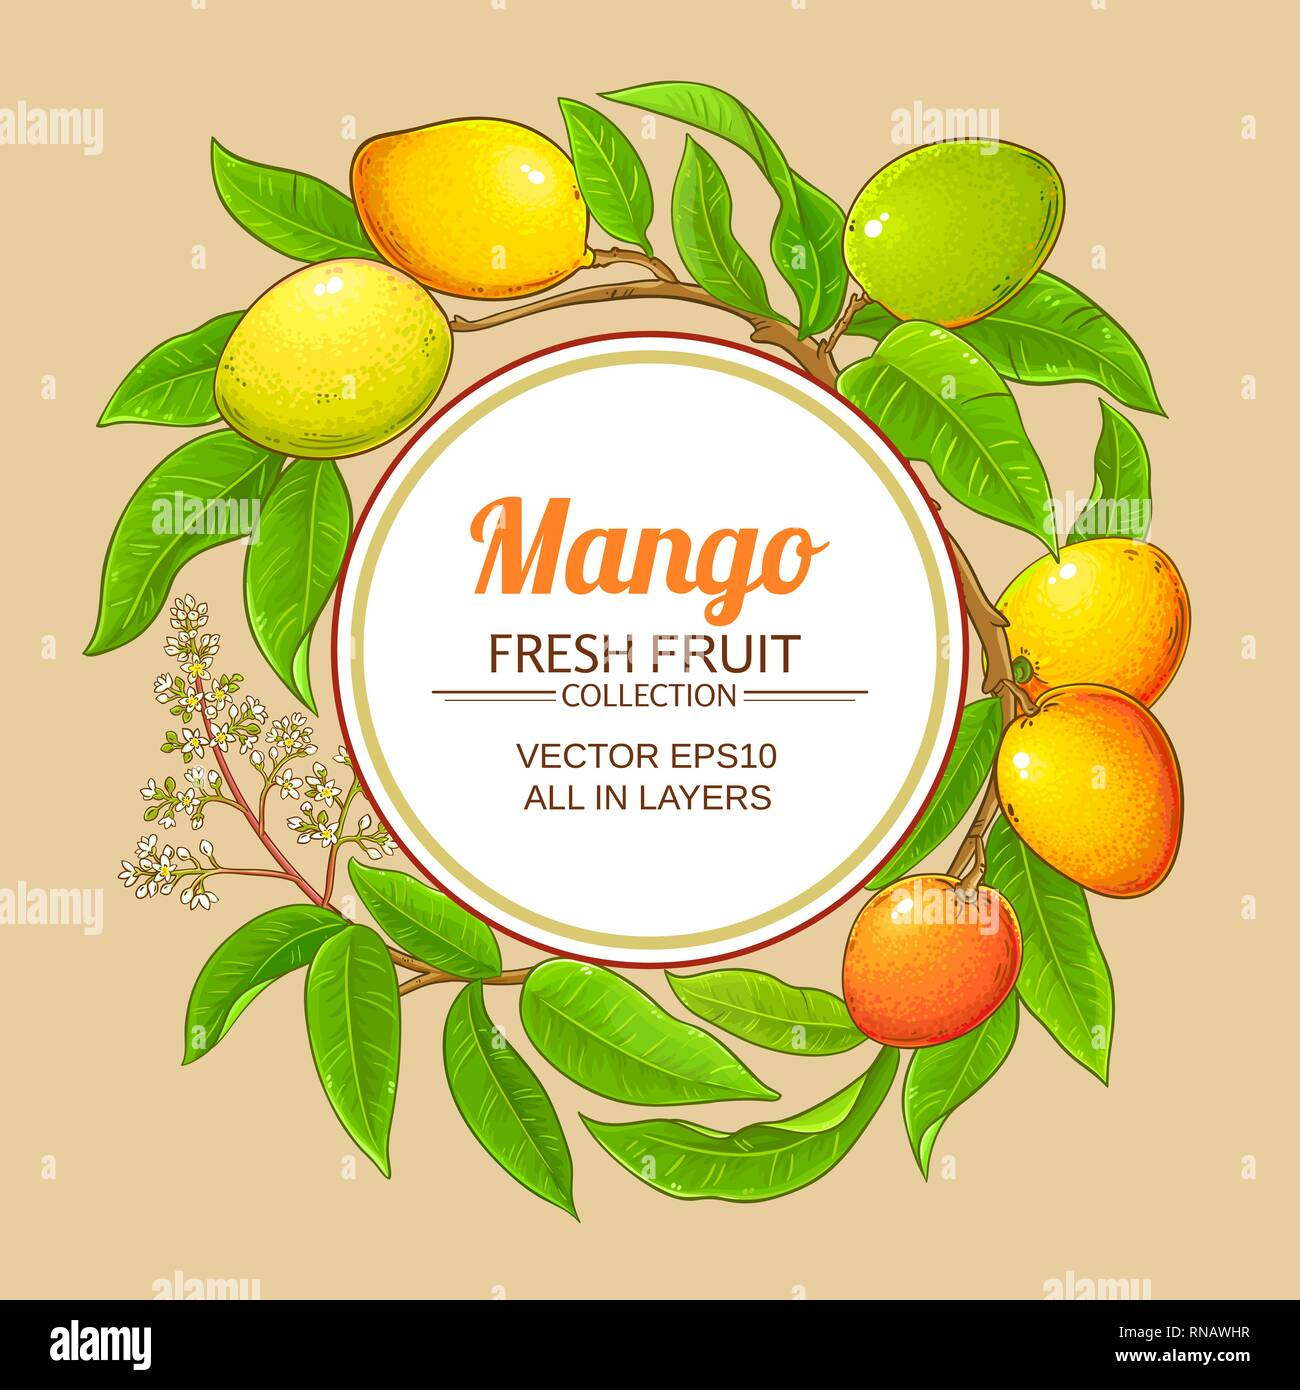 mango vector frame on color background - Stock Image